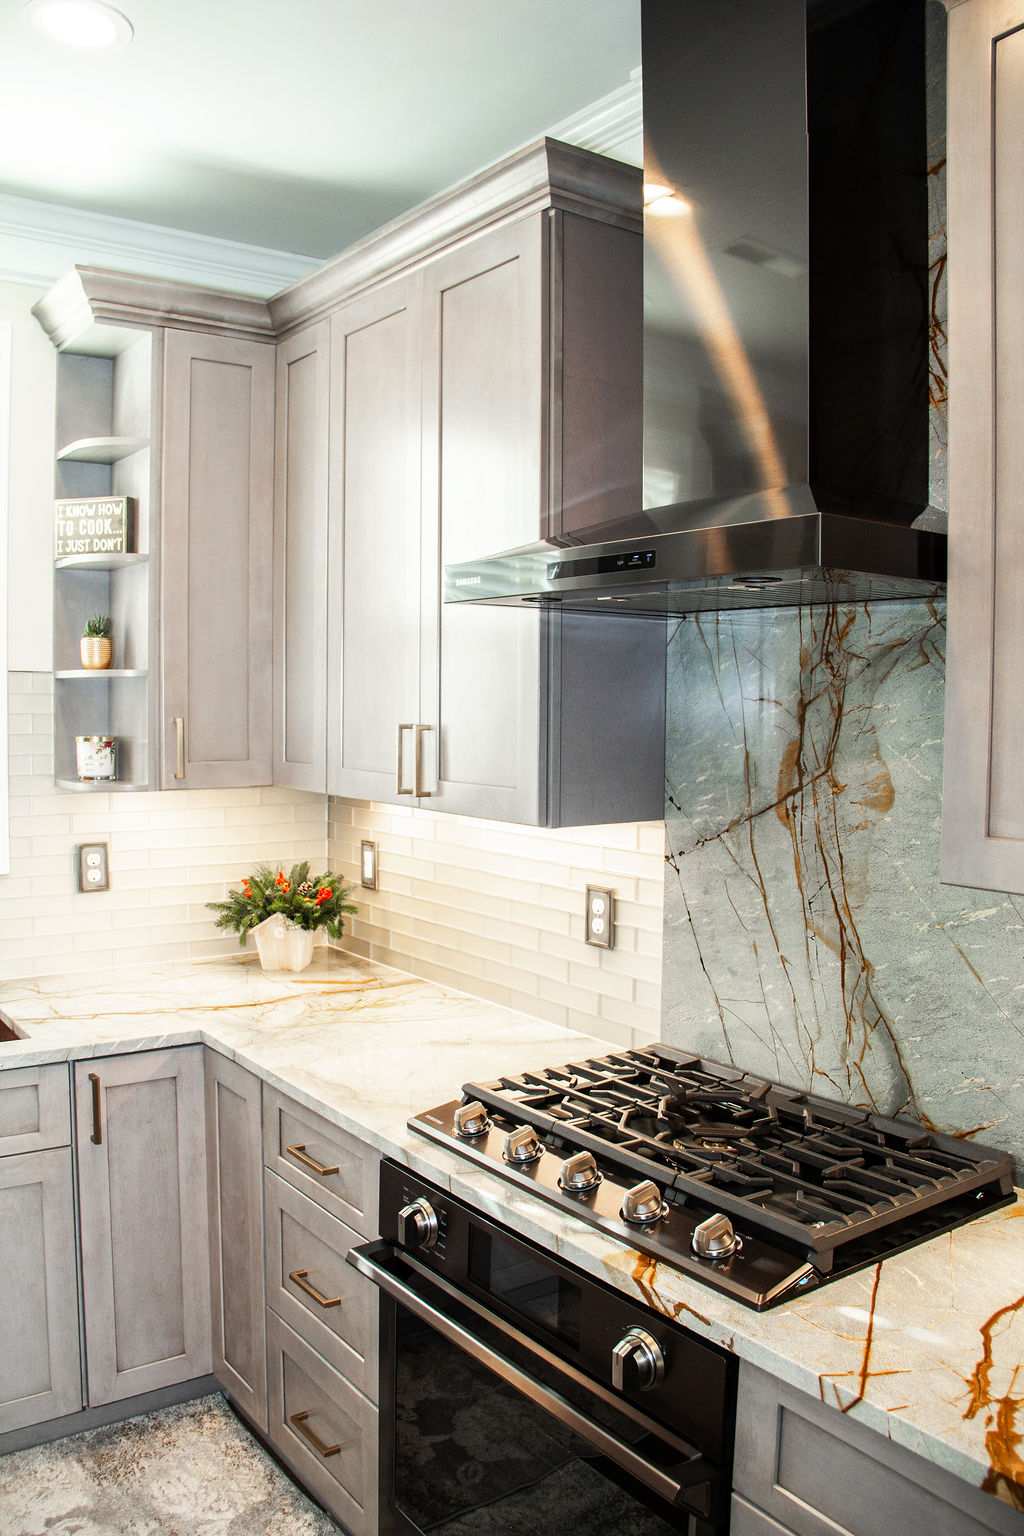 On this install we continue the beautiful Blue Roma quartzite up the backsplash to compliment the amazing subway tile backsplash.